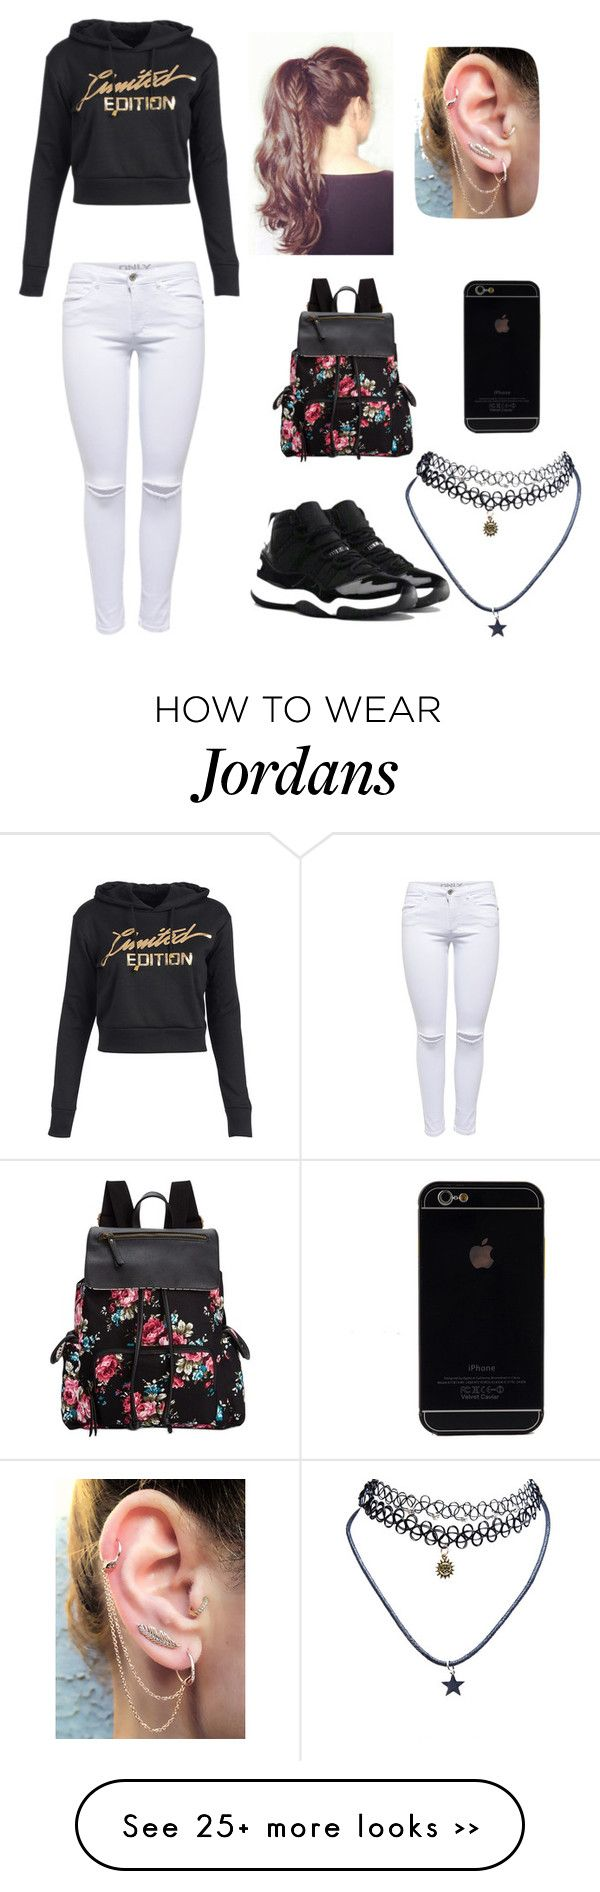 """Untitled #68"" by fashionlover2099 on Polyvore"